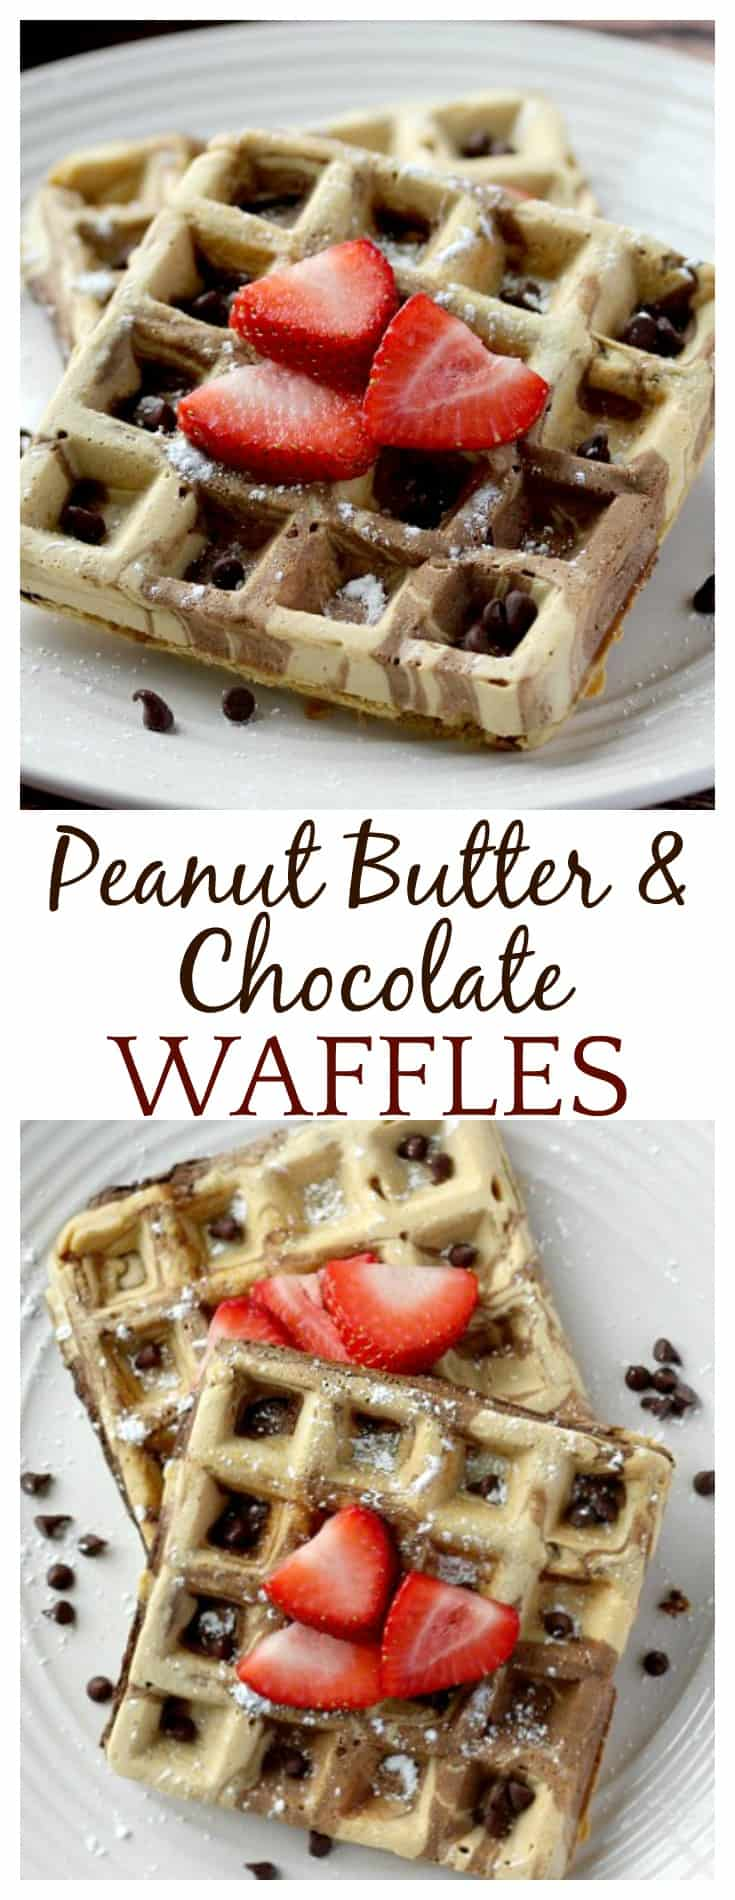 These Peanut Butter and Chocolate Swirled Waffles are the perfect breakfast recipe for all the peanut butter and chocolate lovers out there! Serve with powdered sugar and strawberries or jam for breakfast, or add chocolate sauce for brunch! Try making a waffle ice cream sundae for dessert! The possibilities are endless!